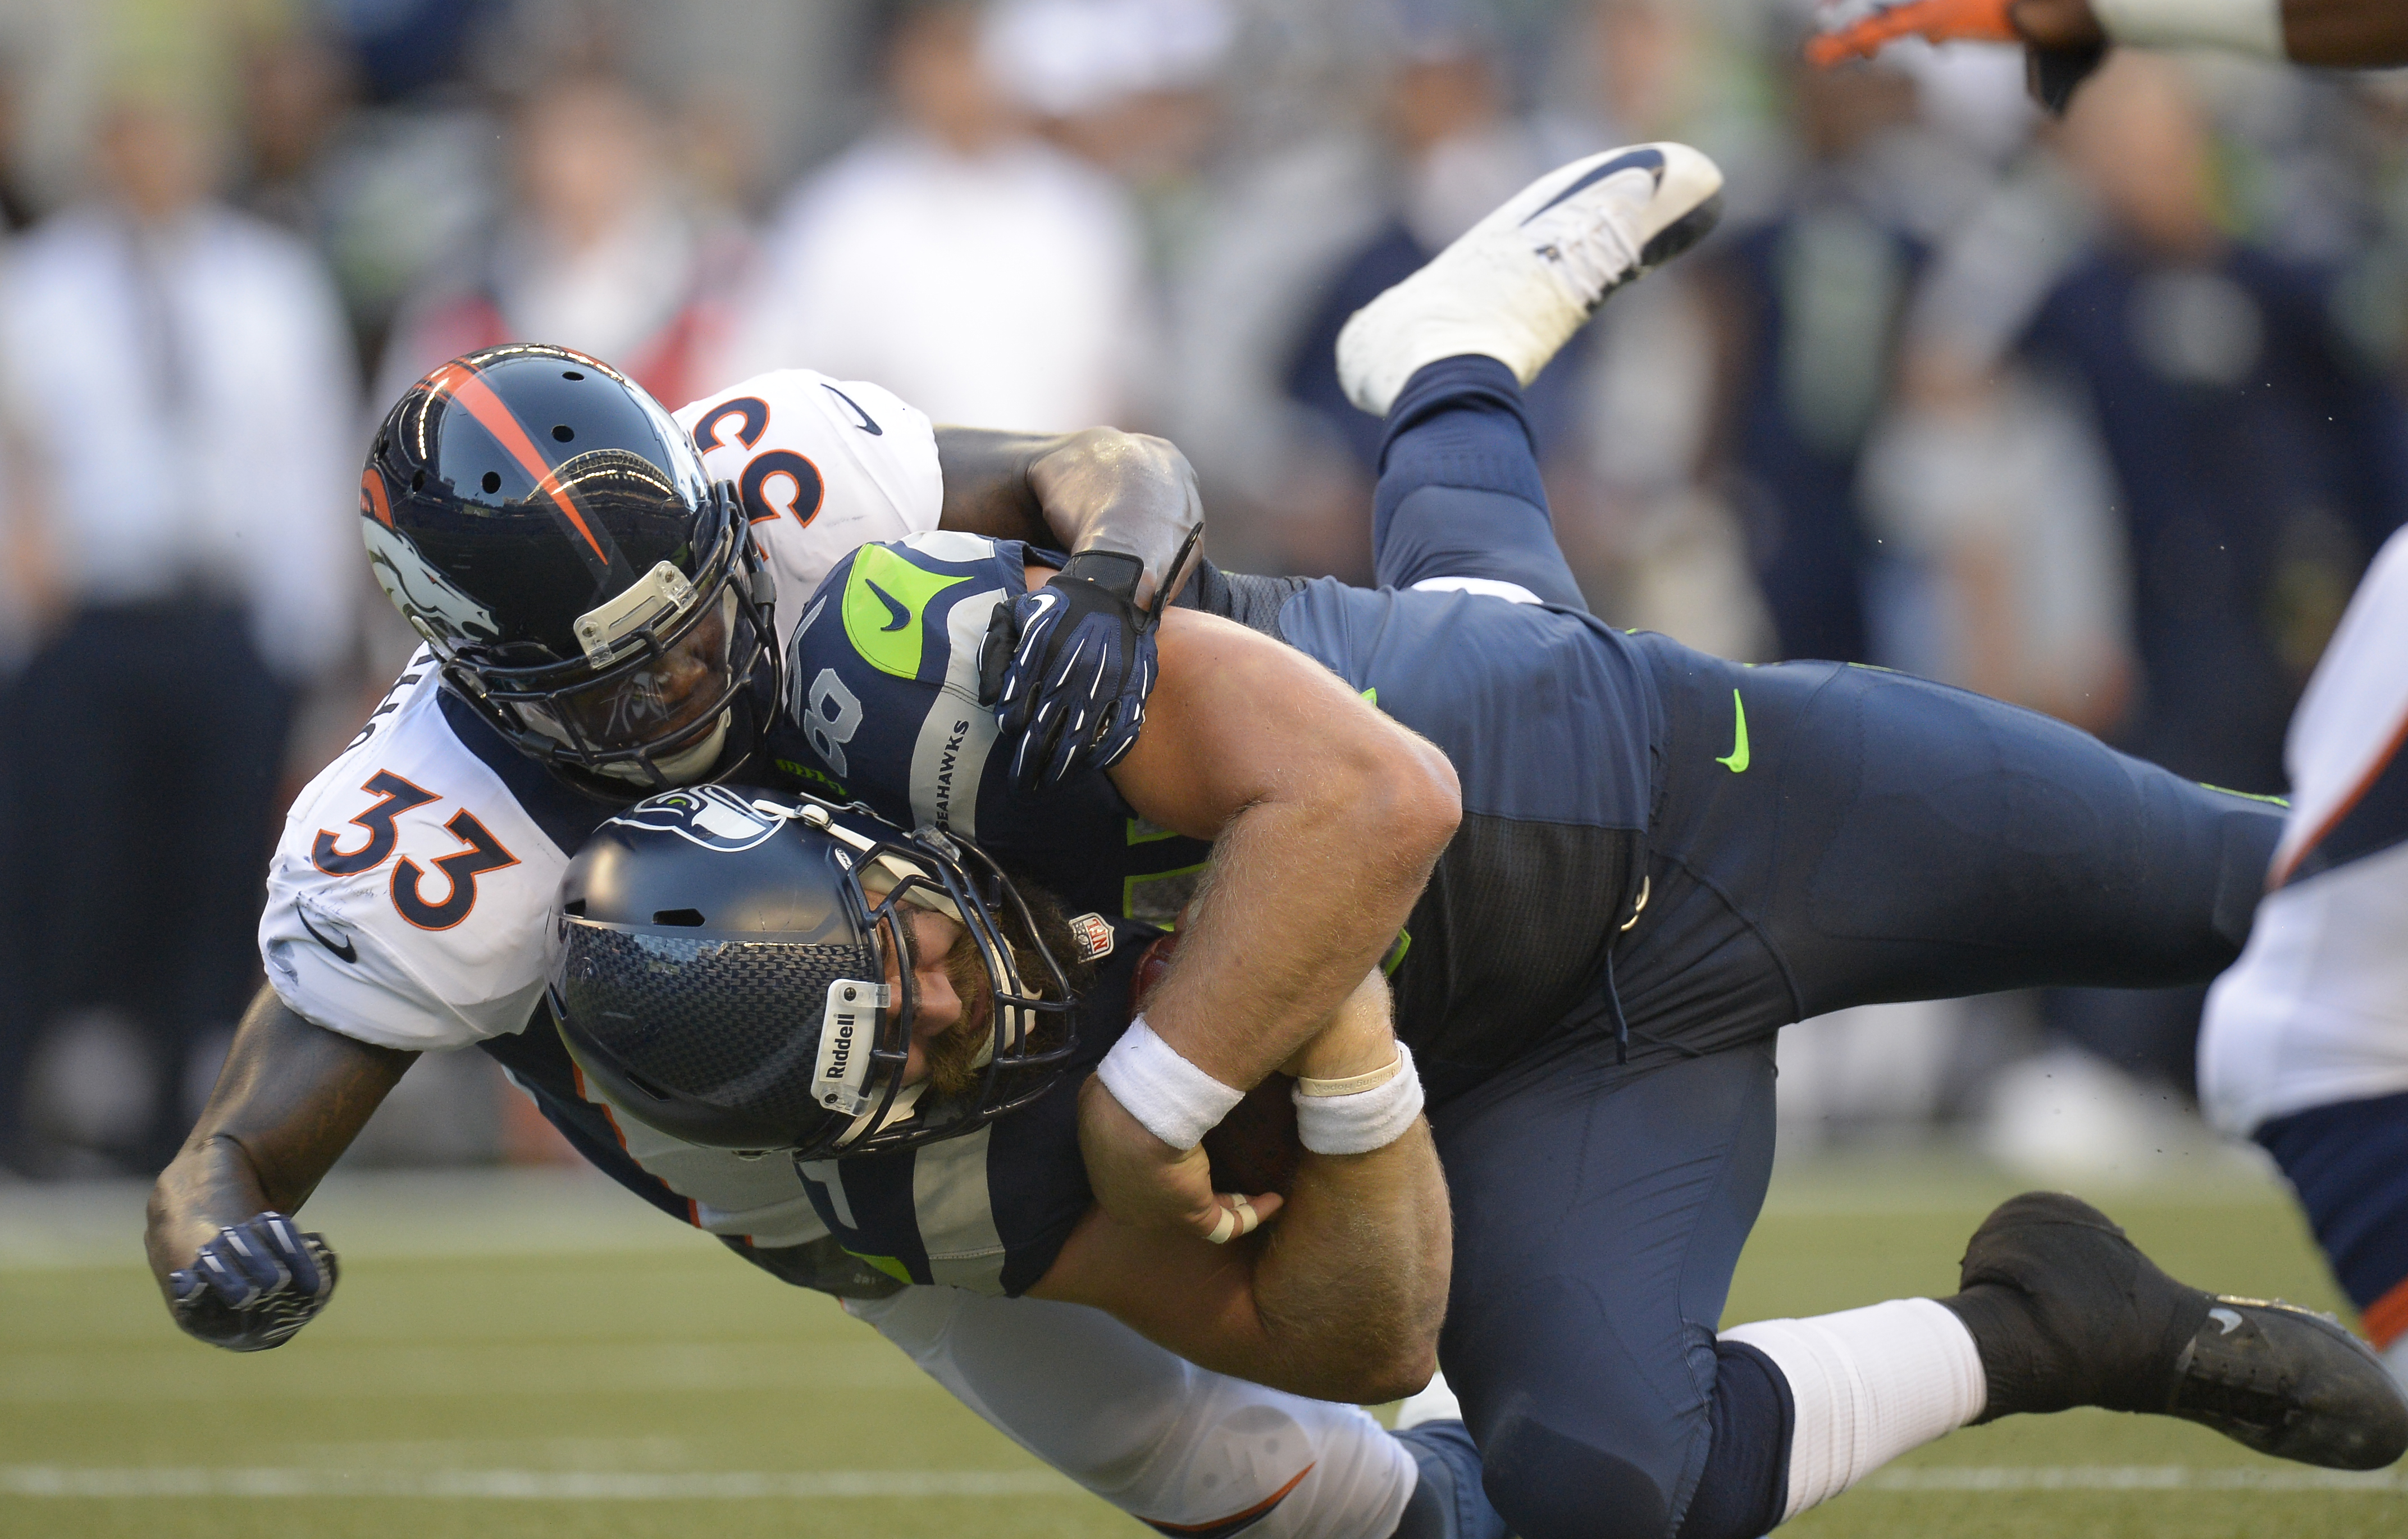 Seattle Seahawks tight end Sean McGrath (84) gets wrapped up by Denver Broncos safety Duke Ihenacho (33) after a gain during the first quarter, on Aug. 17, 2013 at Century Link Field in Seattle.